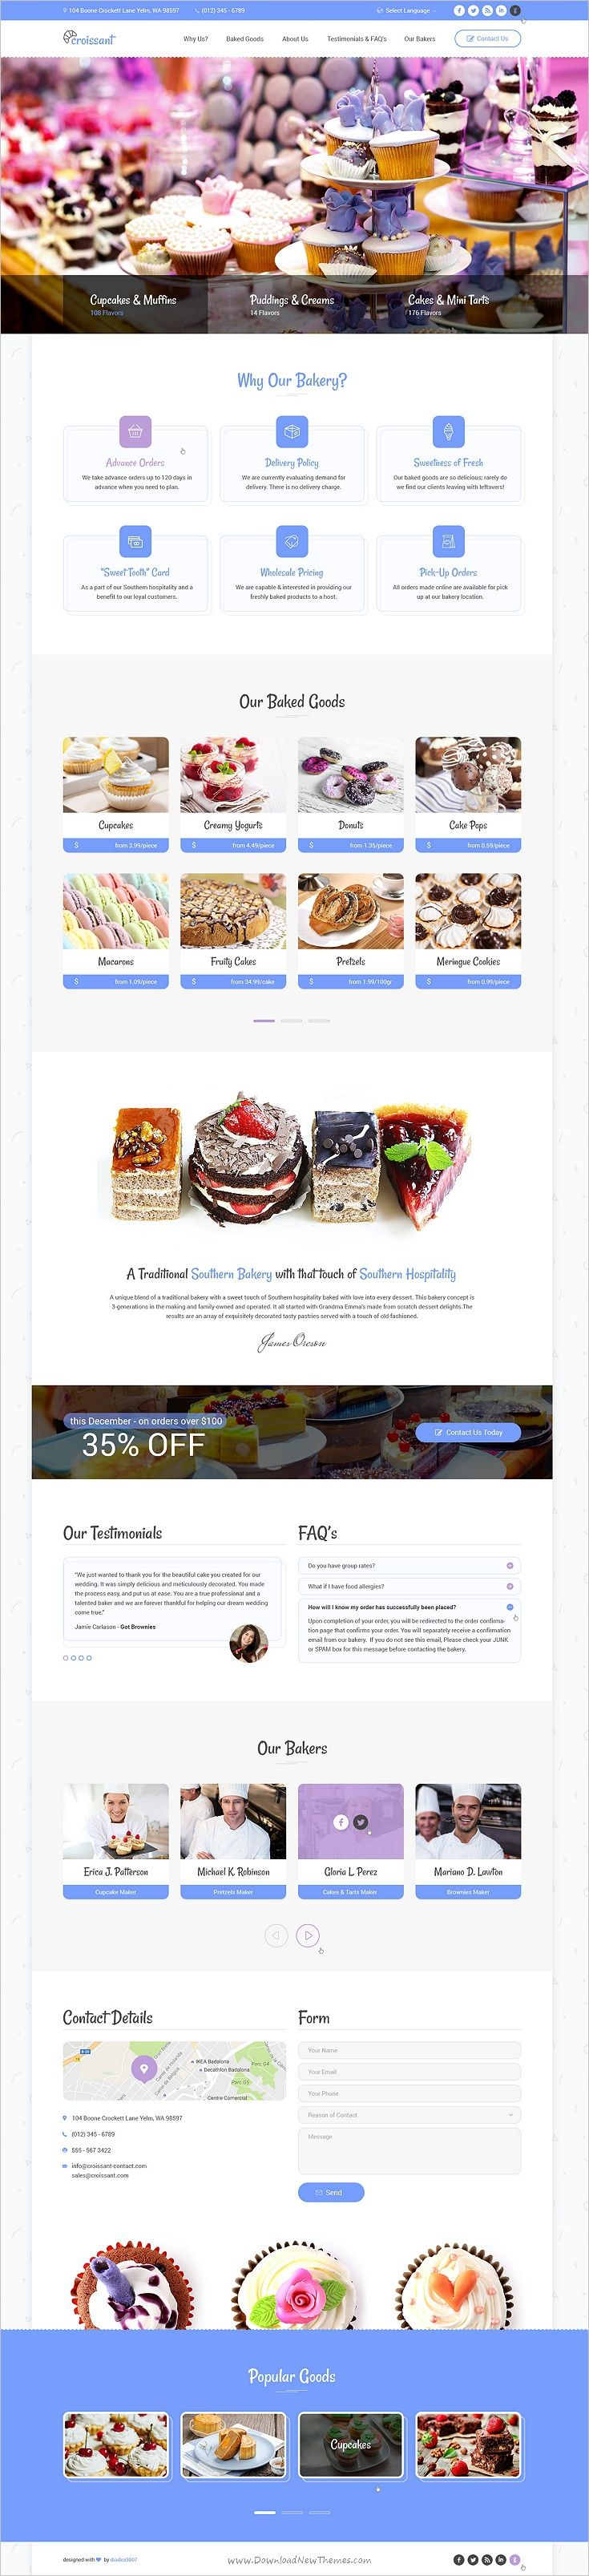 Croissant is a creative, unique, rich and modern #PSD template especially designed for #webdesign #bakery shop, Pastries and Bakeries websites download now➩ https://themeforest.net/item/croissant-creative-bakery-and-pastry-business-one-page-psd-template/19085655?ref=Datasata